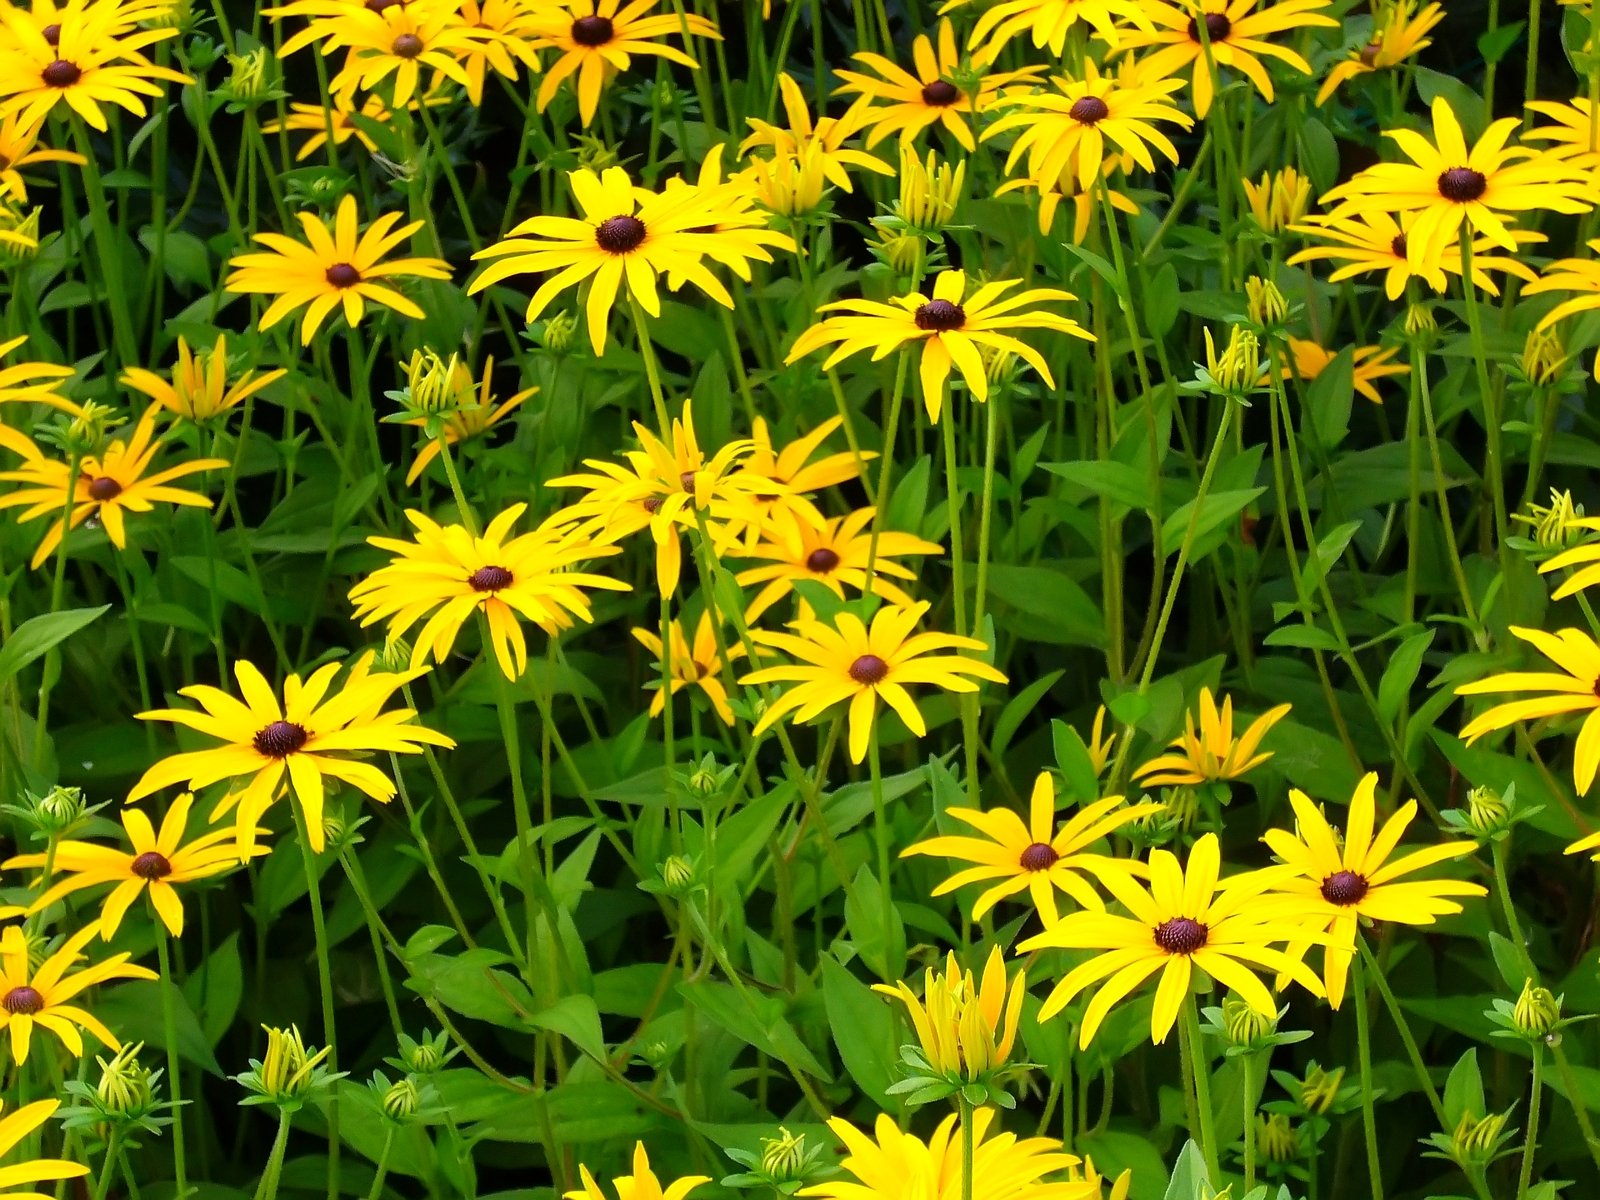 Free yellow flowers stock photo freeimages free yellow flowers stock photo mightylinksfo